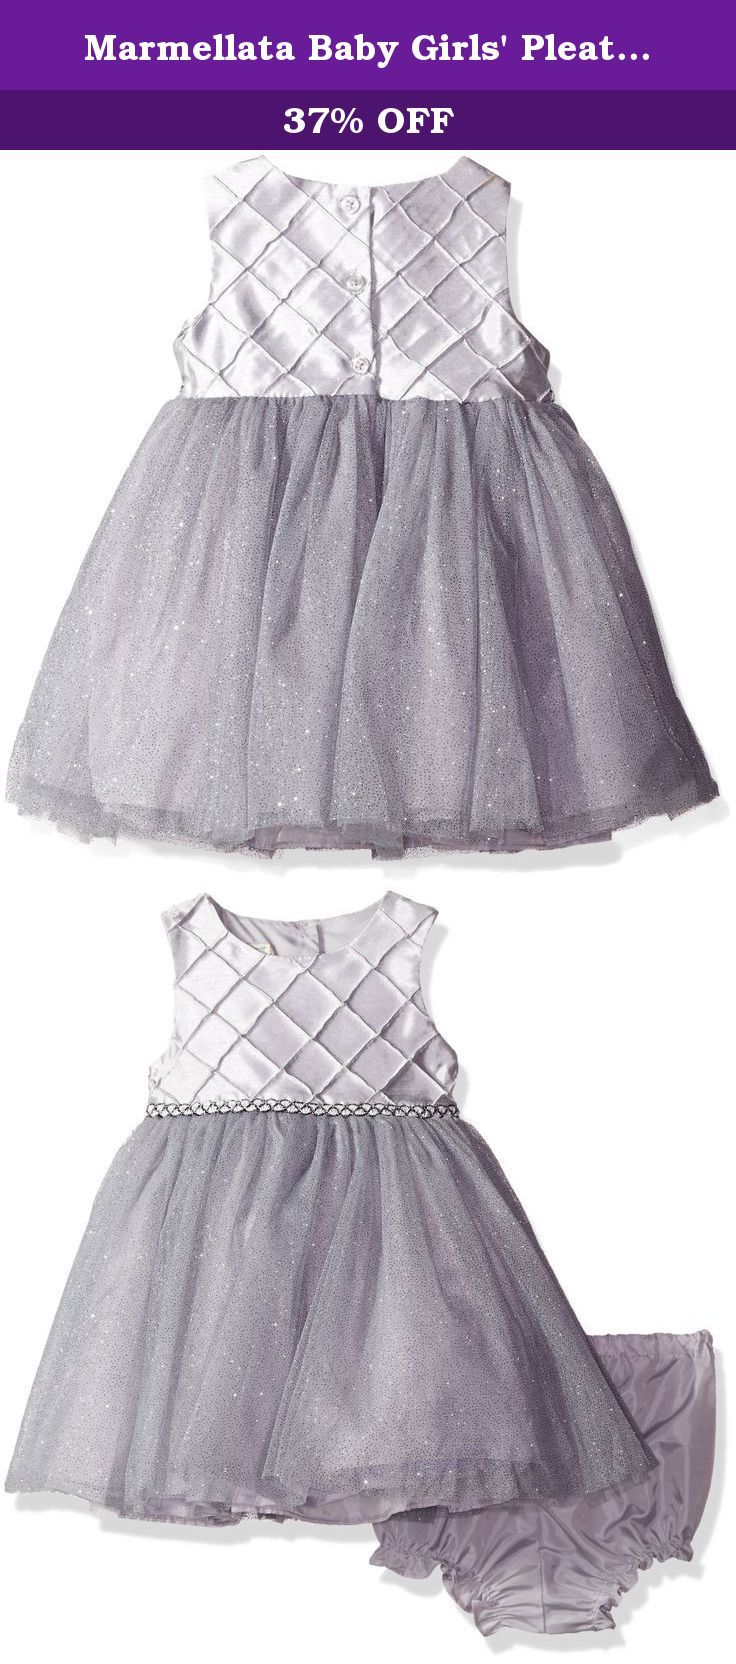 Marmellata Baby Girls' Pleated Bodice Holiday Party Dress, Silver, 24 Months. This fun ballerina holiday party dress has a diamond pleated bodice and a full tulle skirt with glitter sparkles.